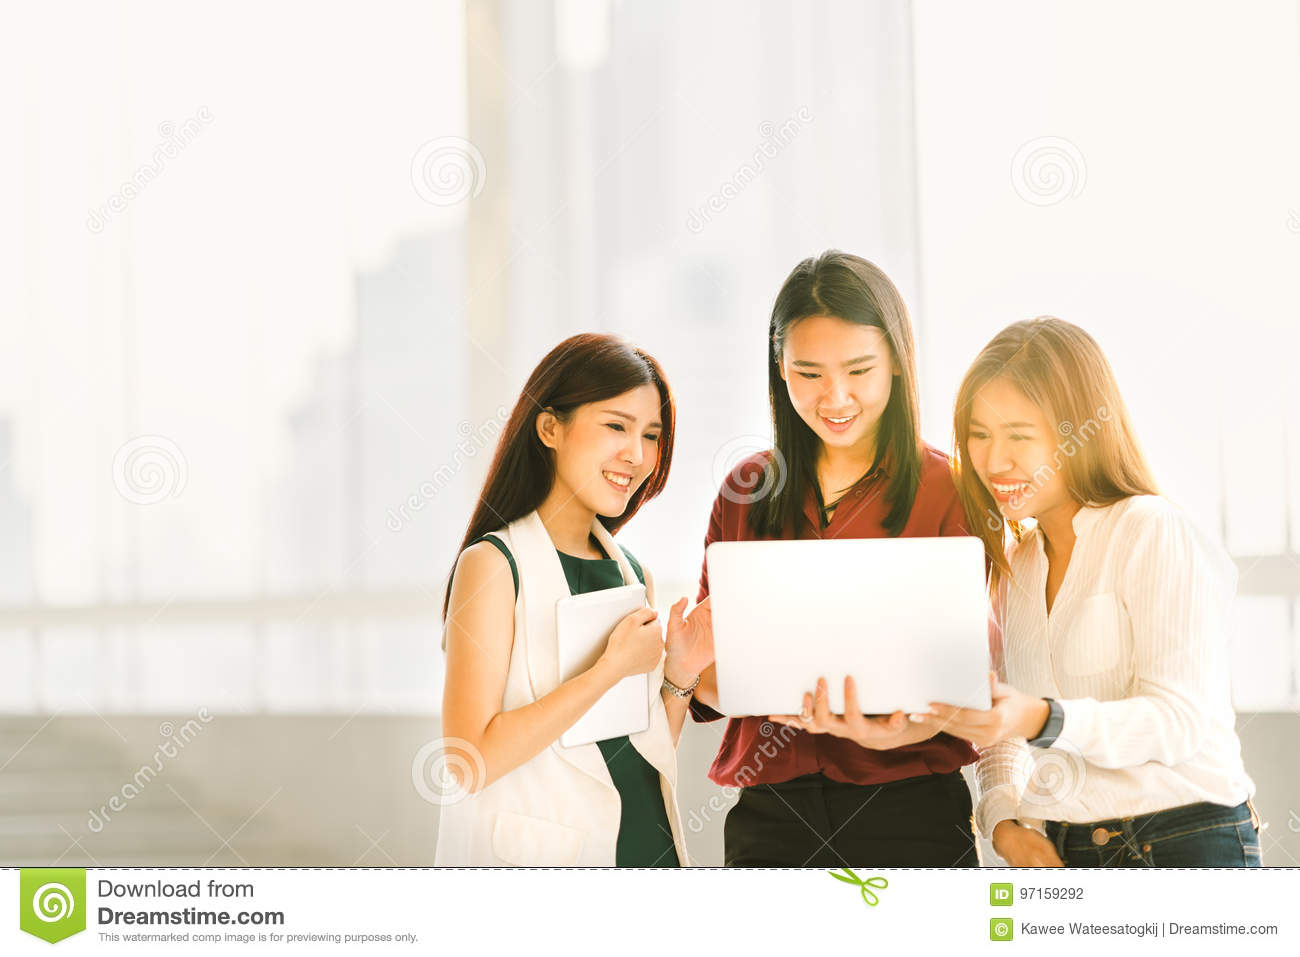 Three beautiful Asian girls on casual business meeting with laptop notebook and digital tablet at sunset